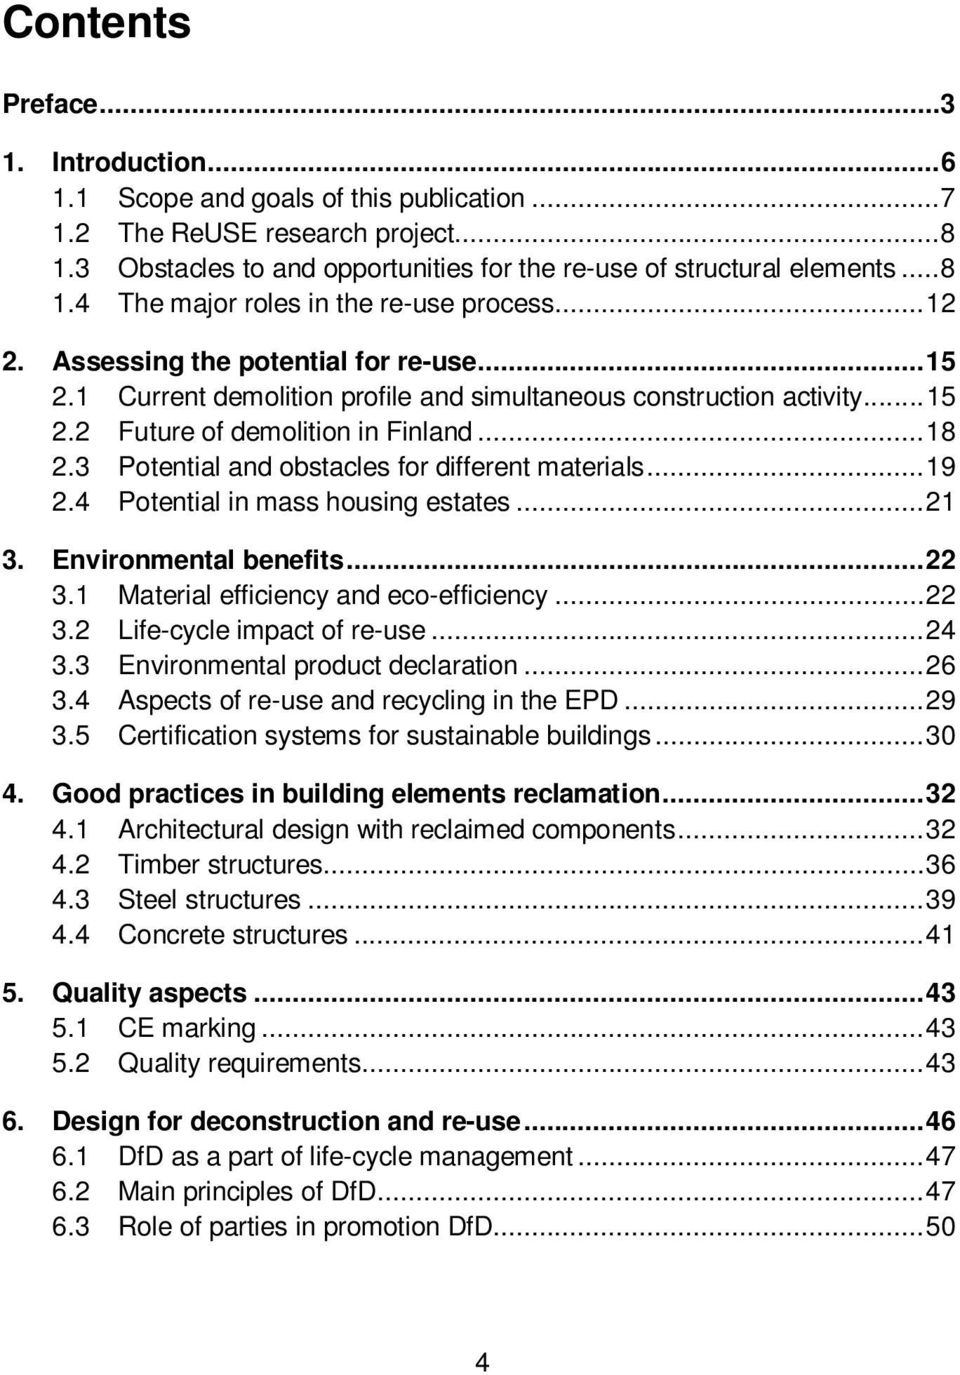 .. 18 2.3 Potential and obstacles for different materials... 19 2.4 Potential in mass housing estates... 21 3. Environmental benefits... 22 3.1 Material efficiency and eco-efficiency... 22 3.2 Life-cycle impact of re-use.